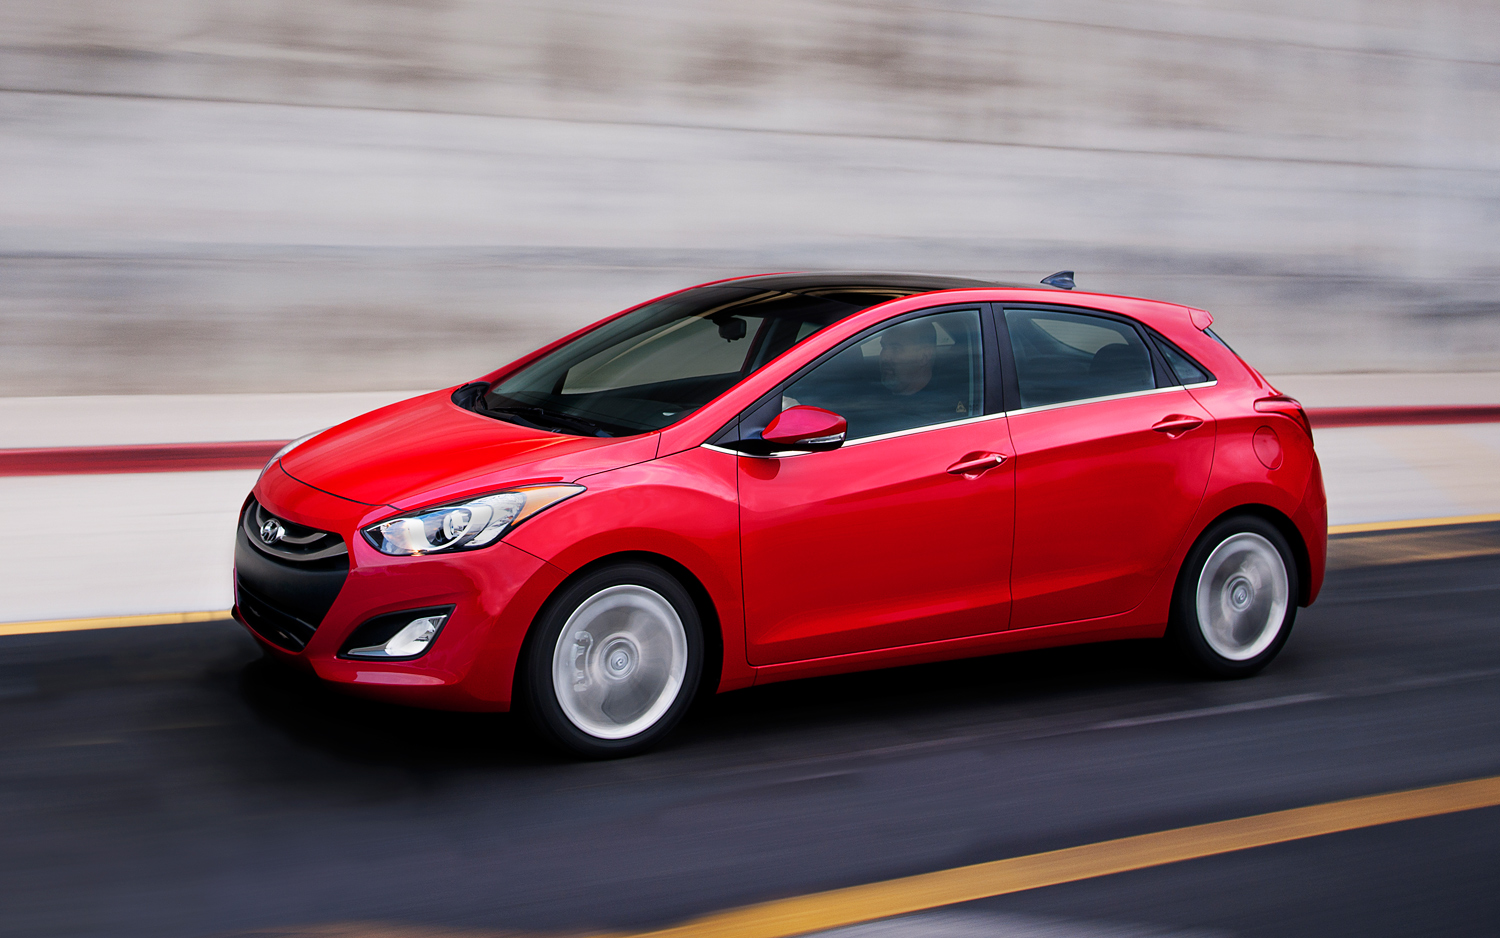 2013 Hyundai Elantra GT Hatch Priced At $19,170, 2013 Accent And 2013  Elantra MSRPs Revealed